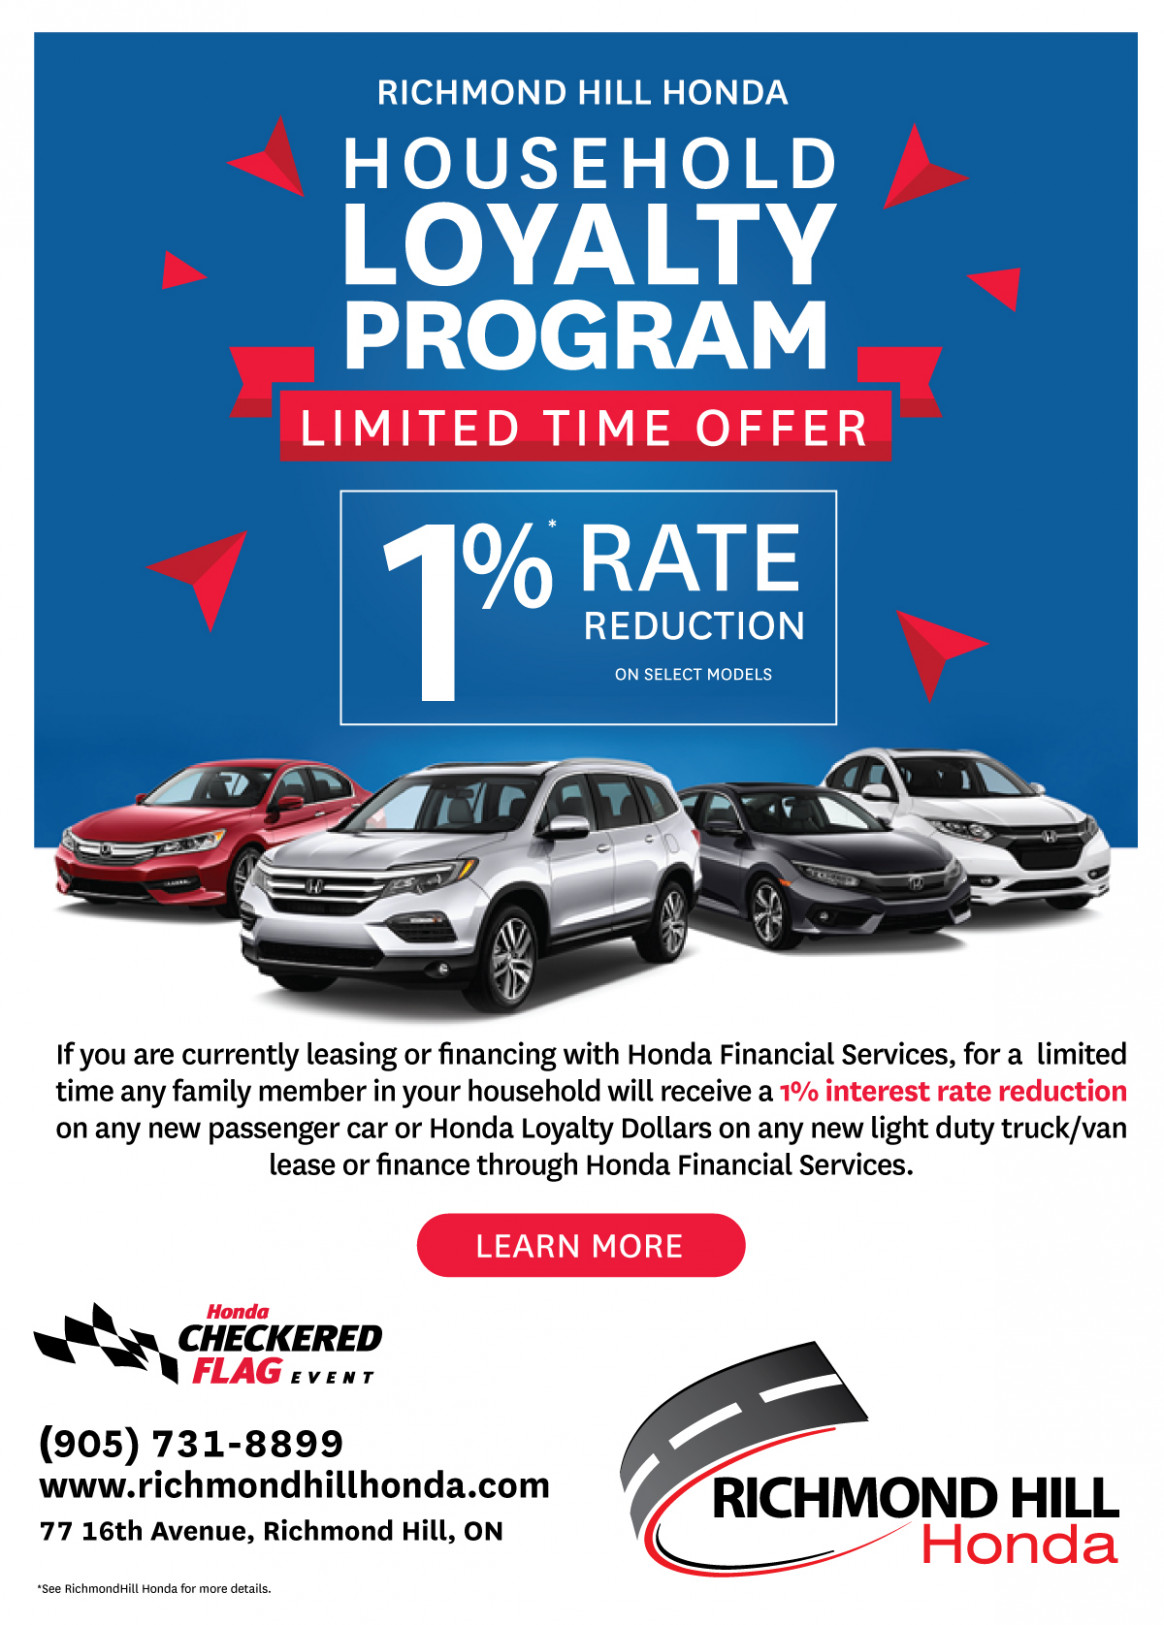 Household Loyalty Program - Richmond Hill Honda